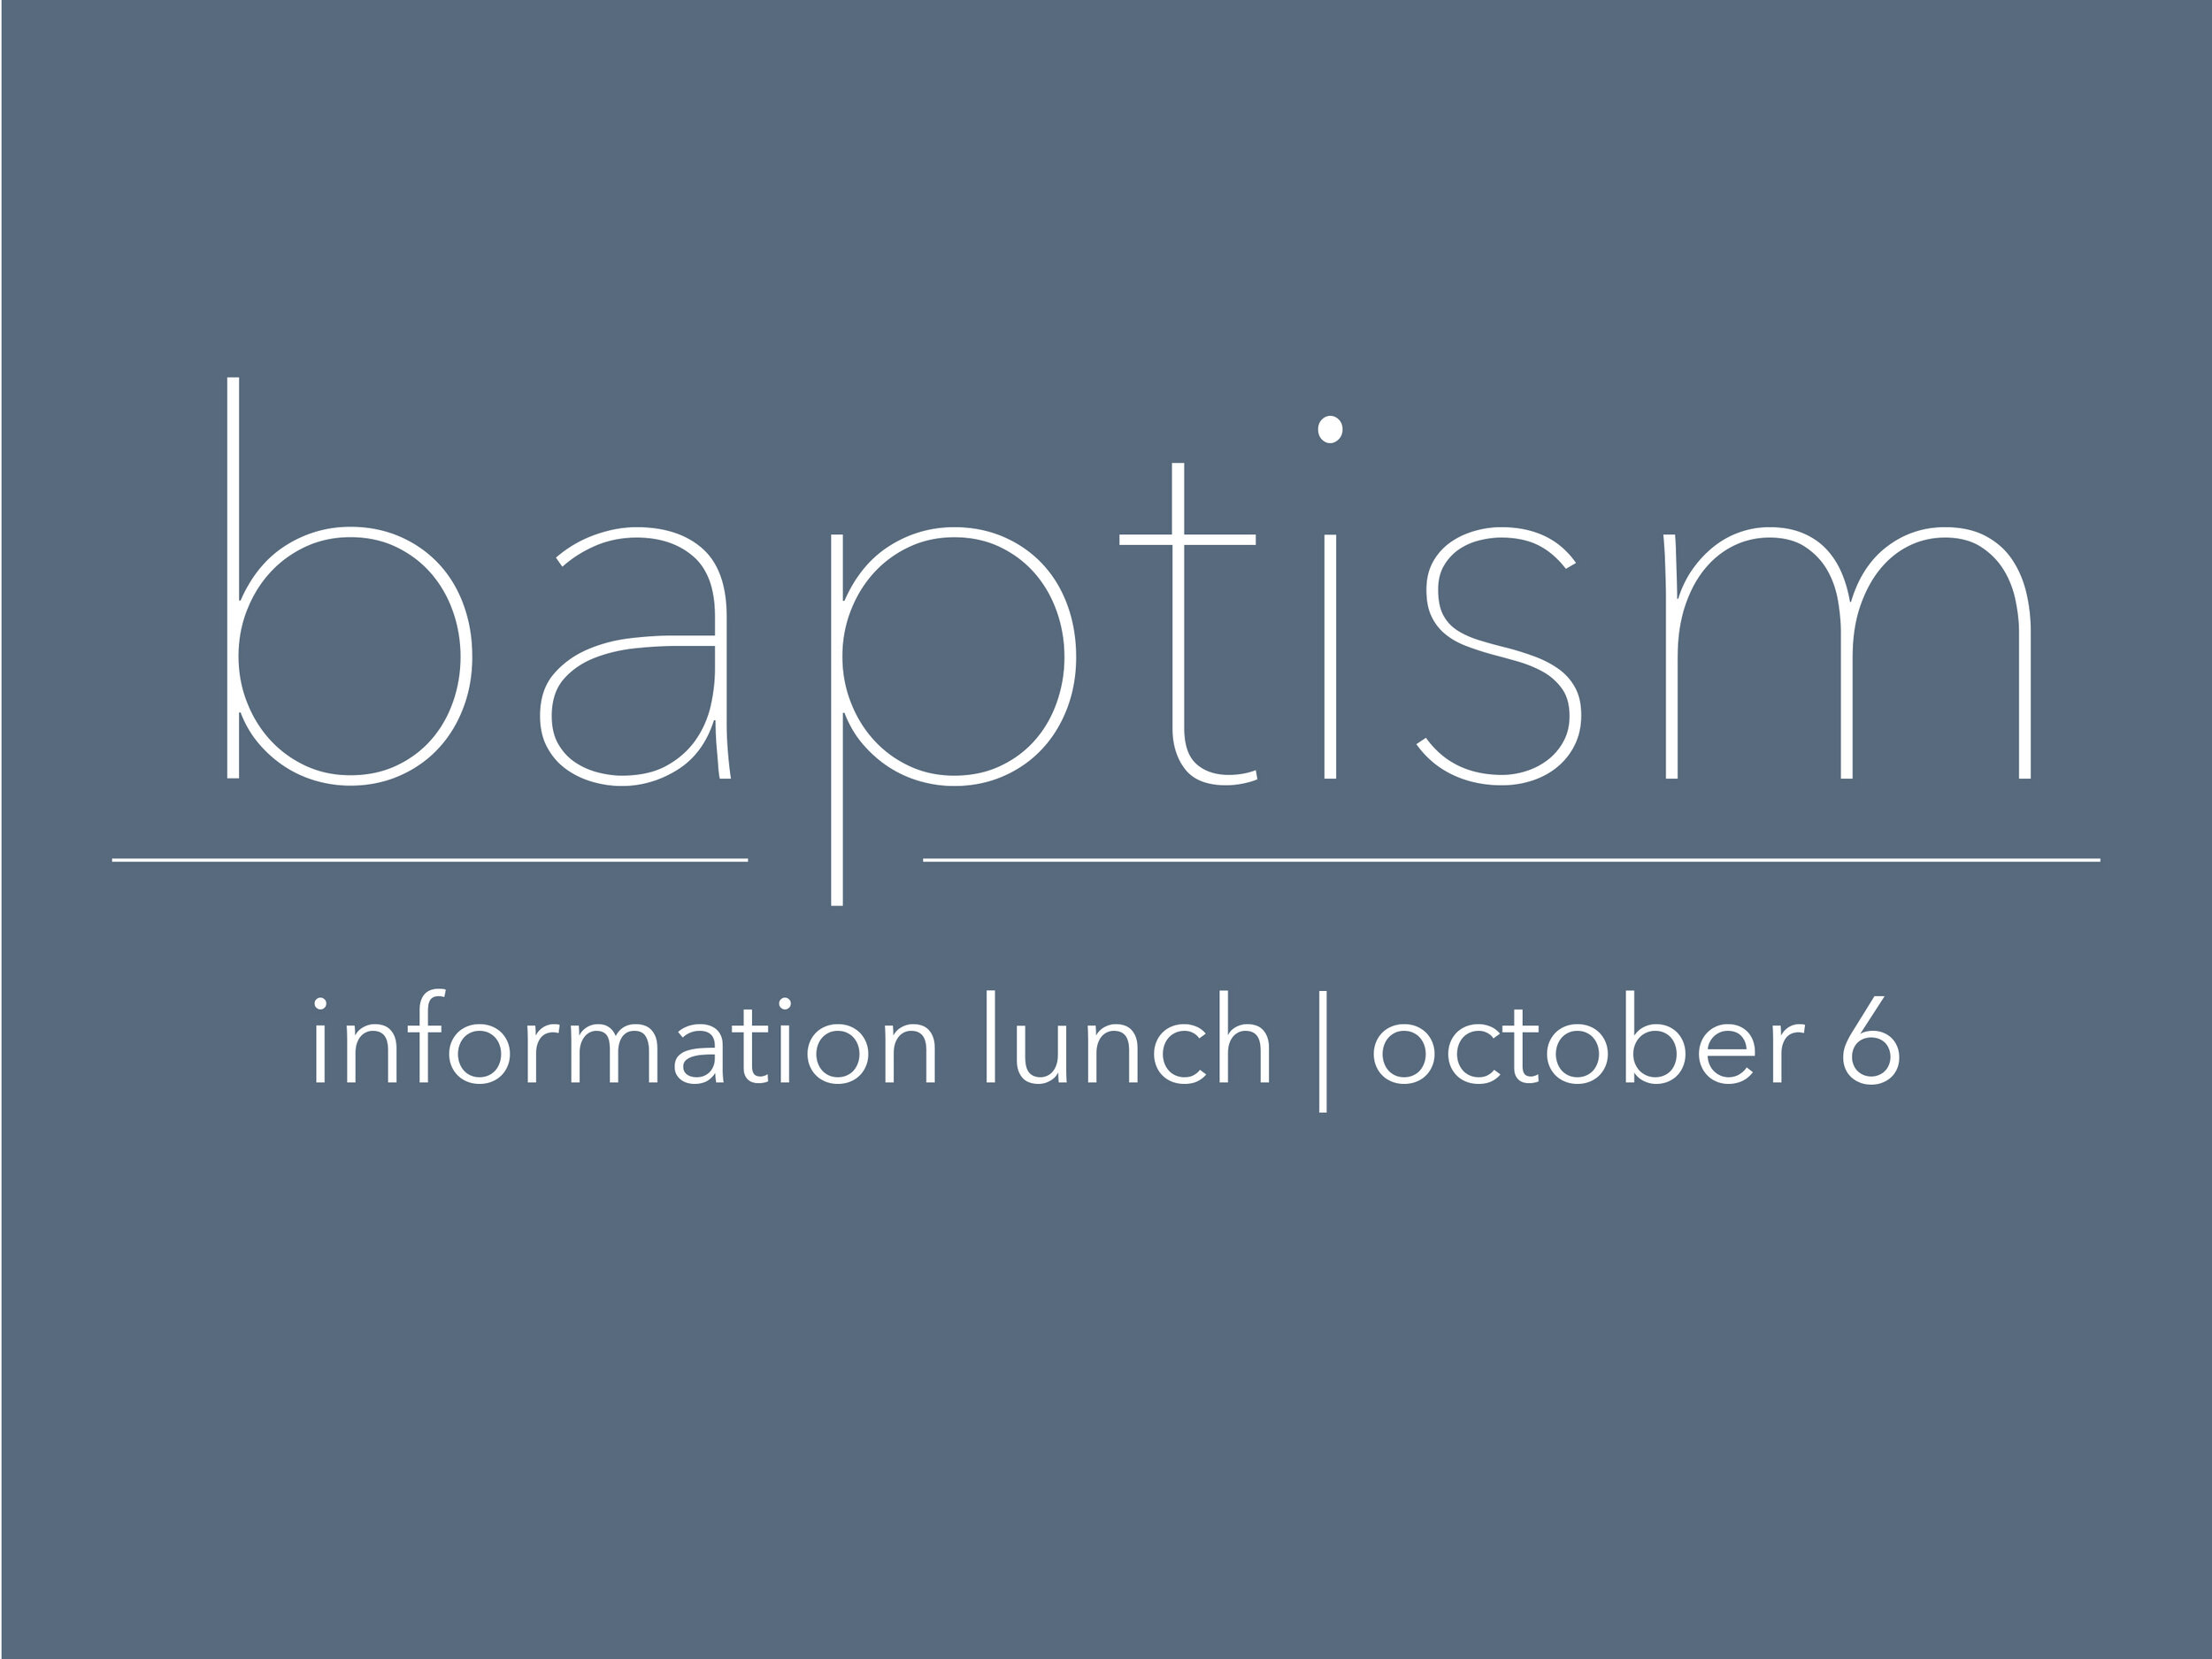 Baptism Info Lunch.jpg